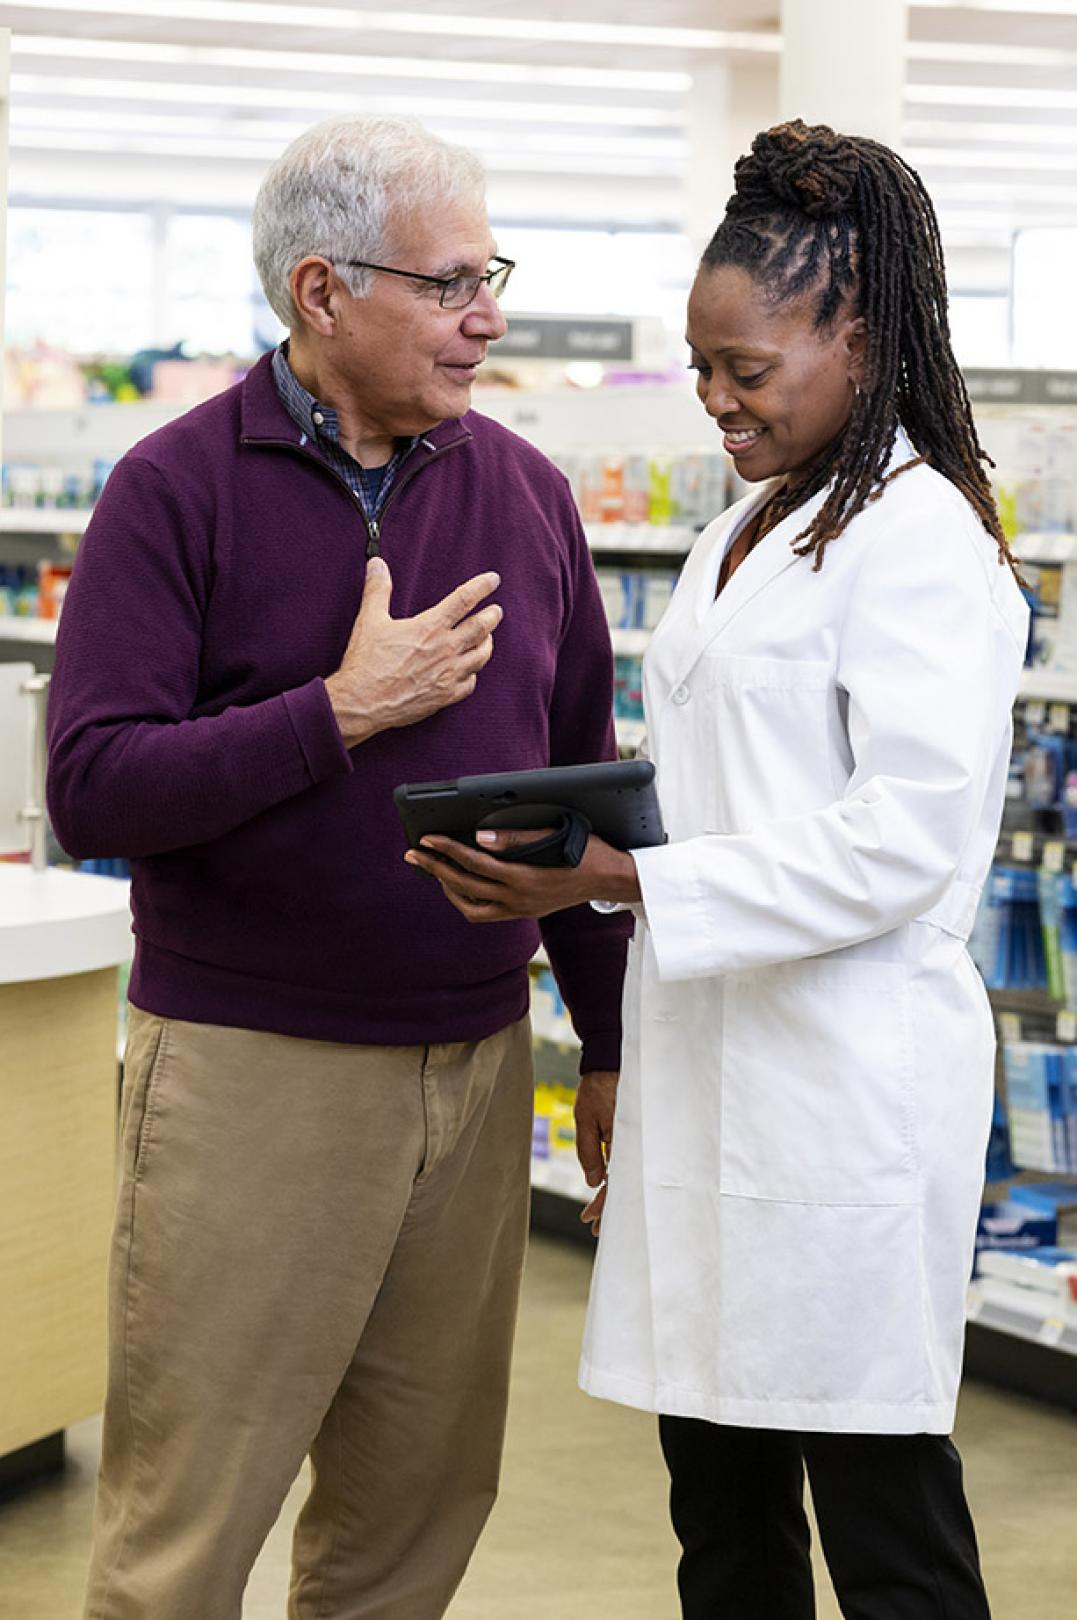 Pharmacist speaking with patient in store